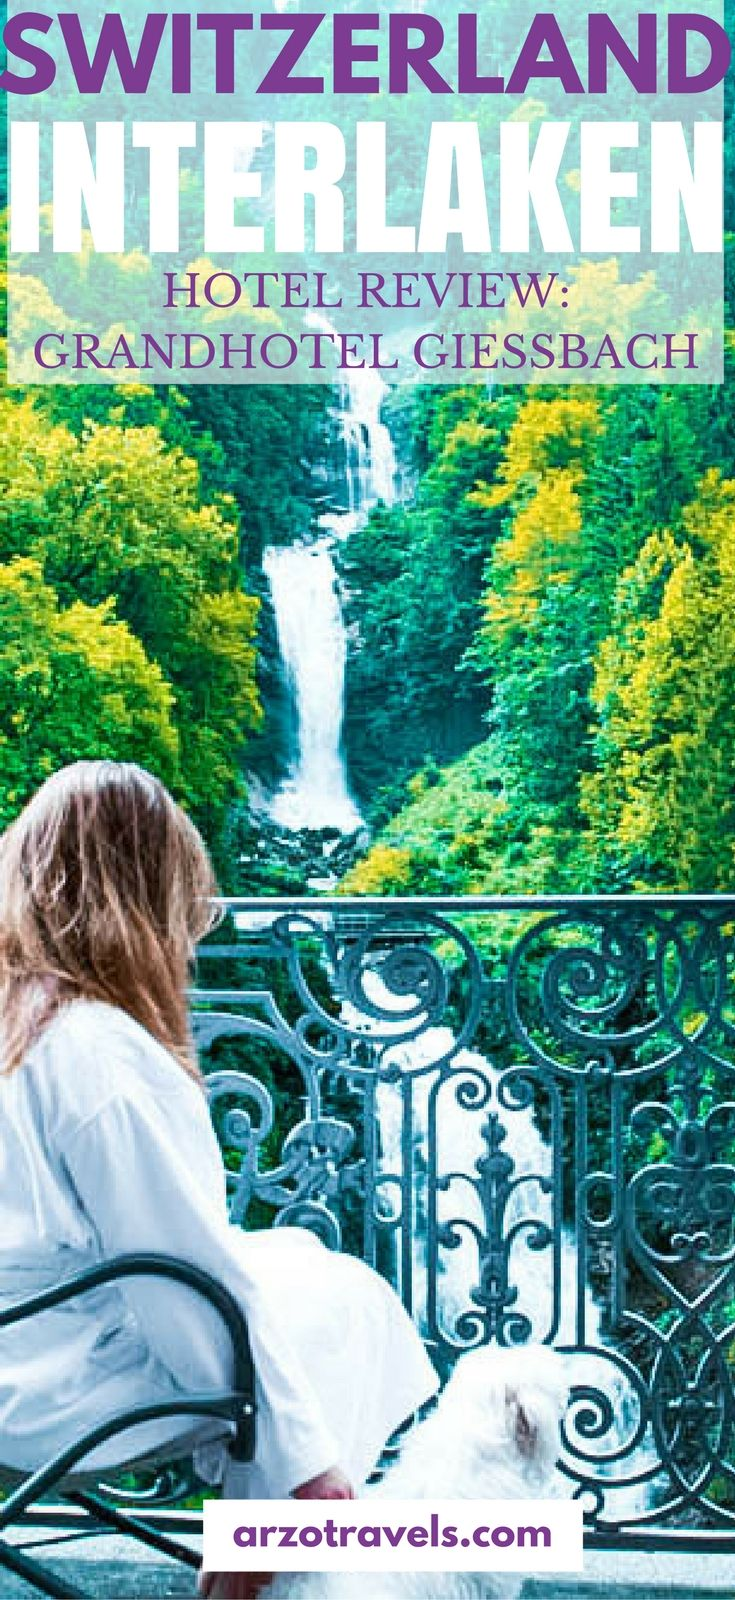 Hotel room with a view: read my #unsponsored hotel review of Grandhotel Giessbach in Interlaken, Switzerland with a view of Lake Brienz and the Giessbachwaterfalls. What to do and see at the hotel. #grandhotelgiessbach #giessbachwaterfalls #interlaken